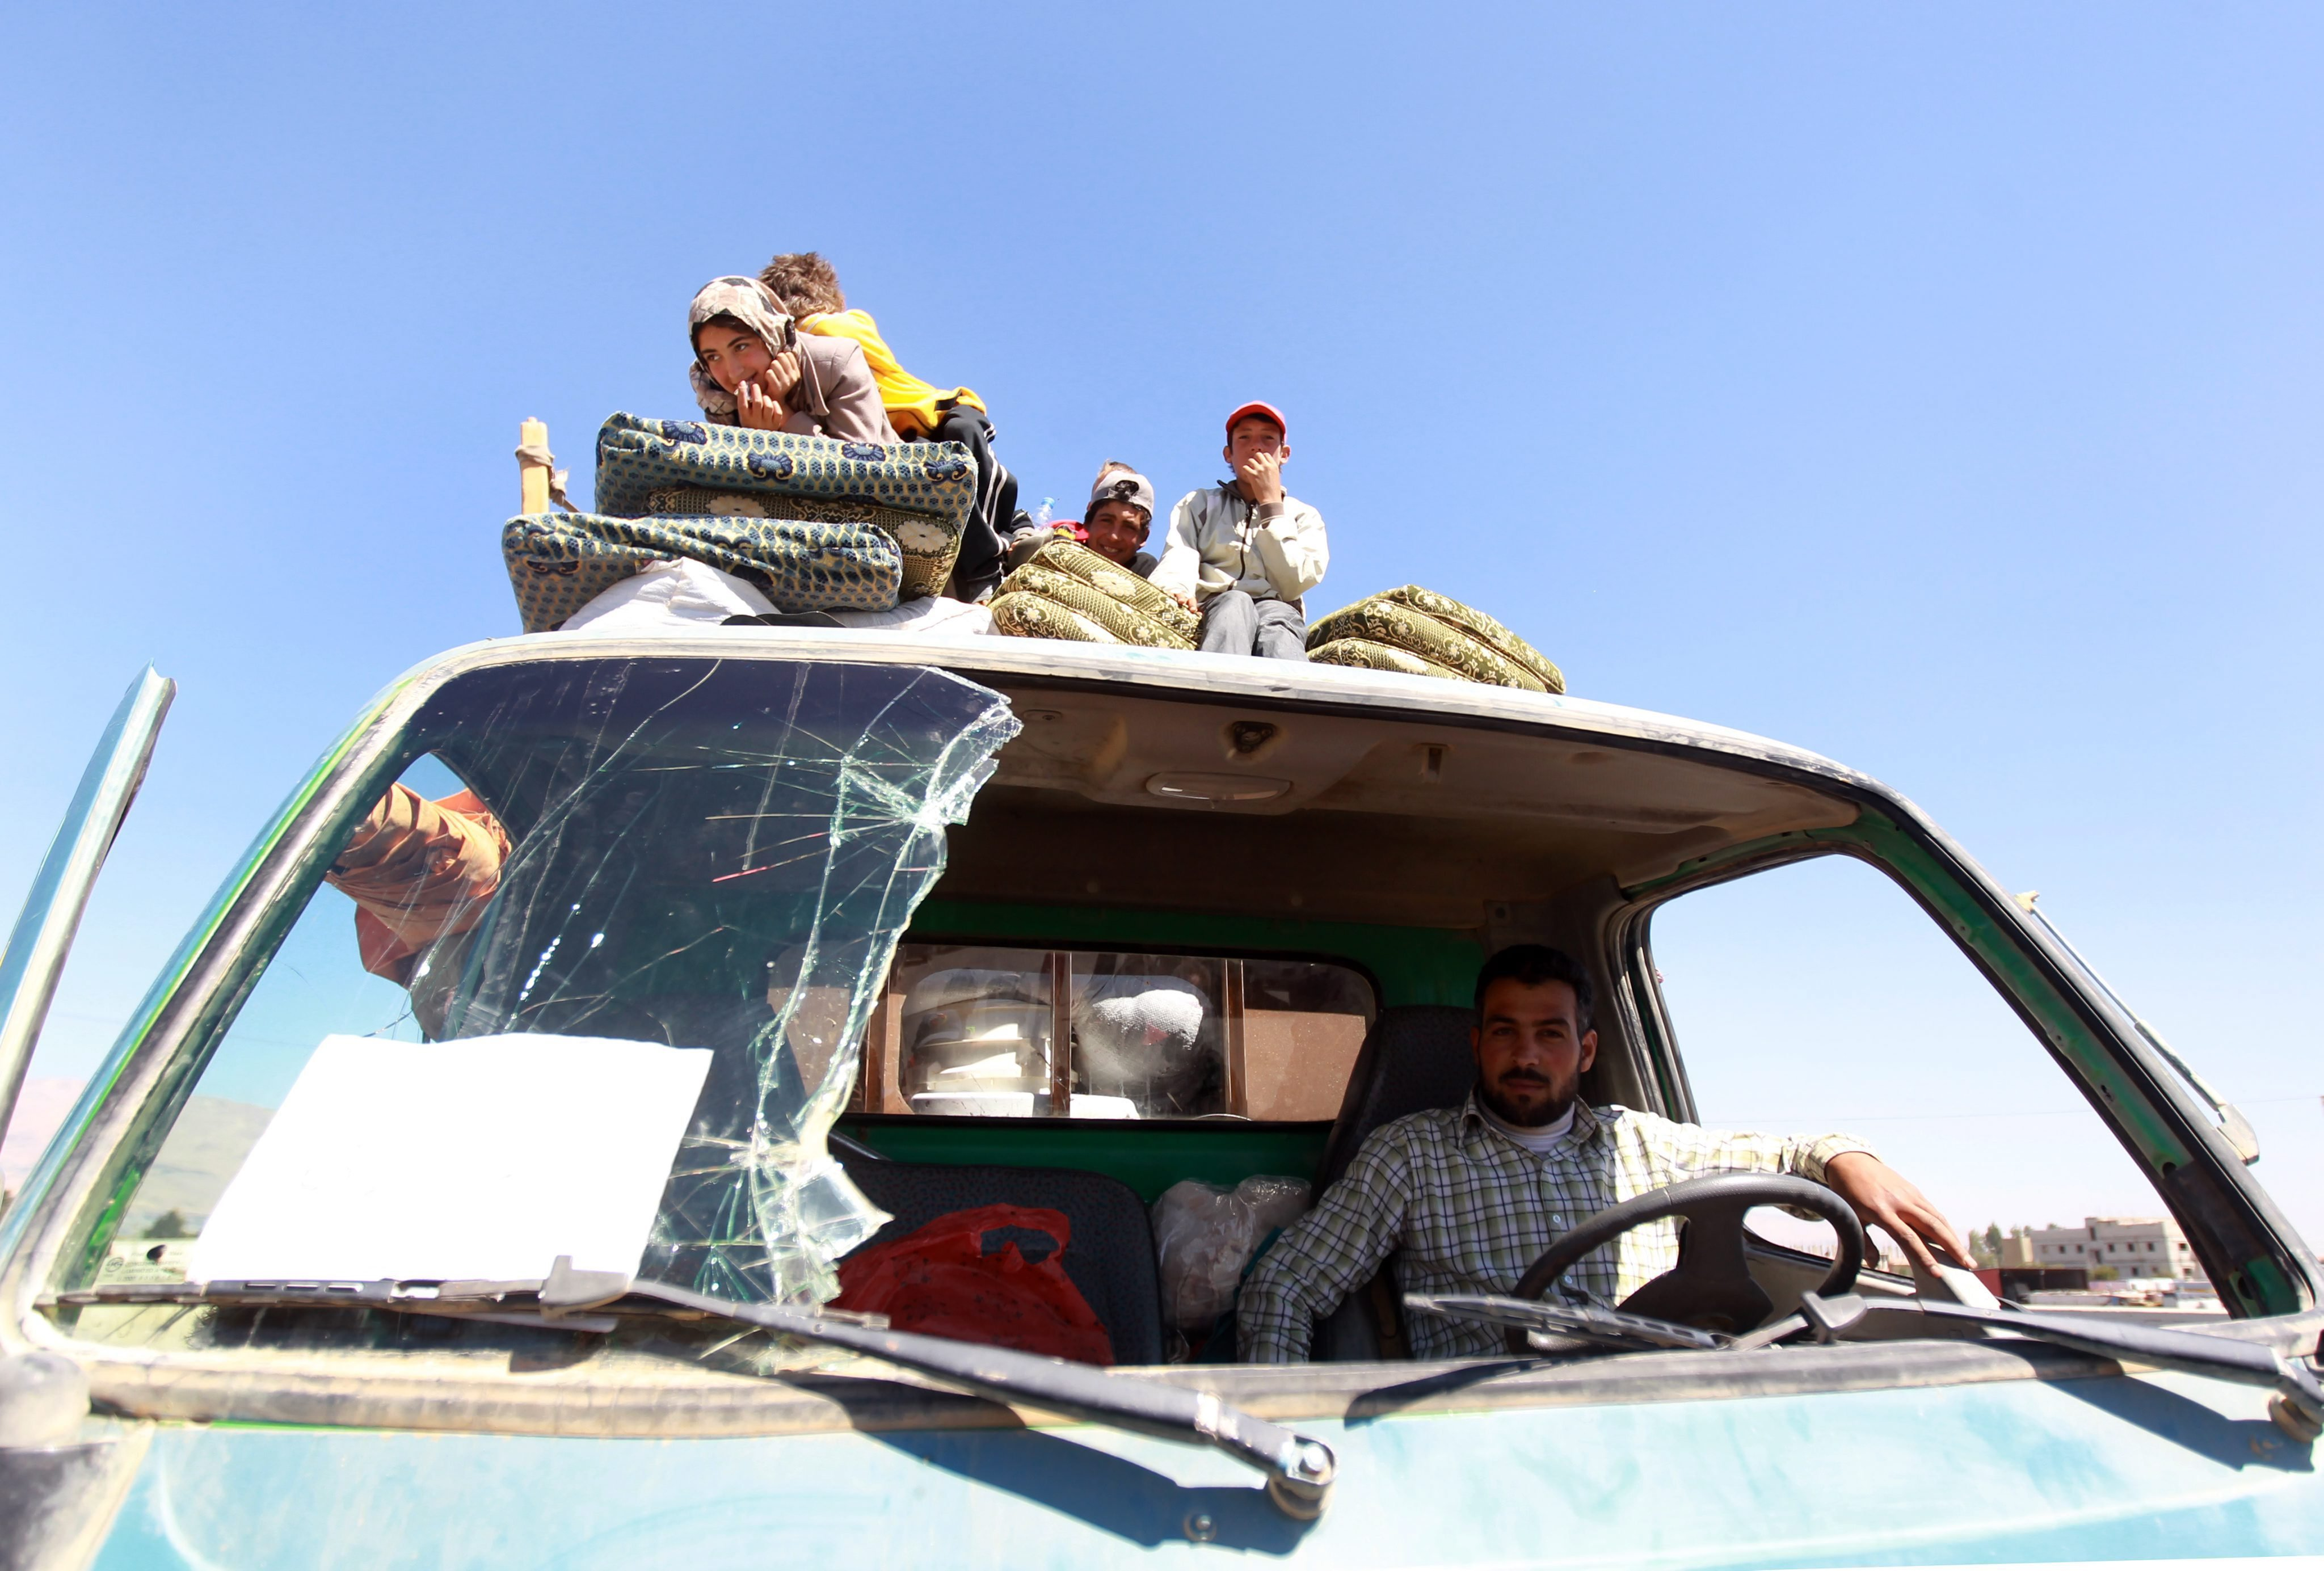 Syrian refugees, who had been based in Arsal but fled after recent fighting, sit on the back of a pick-up truck with their belongings at the Lebanese border crossing point of Masnaa, at Bekaa Valley, Lebanon, Aug. 8, 2014.